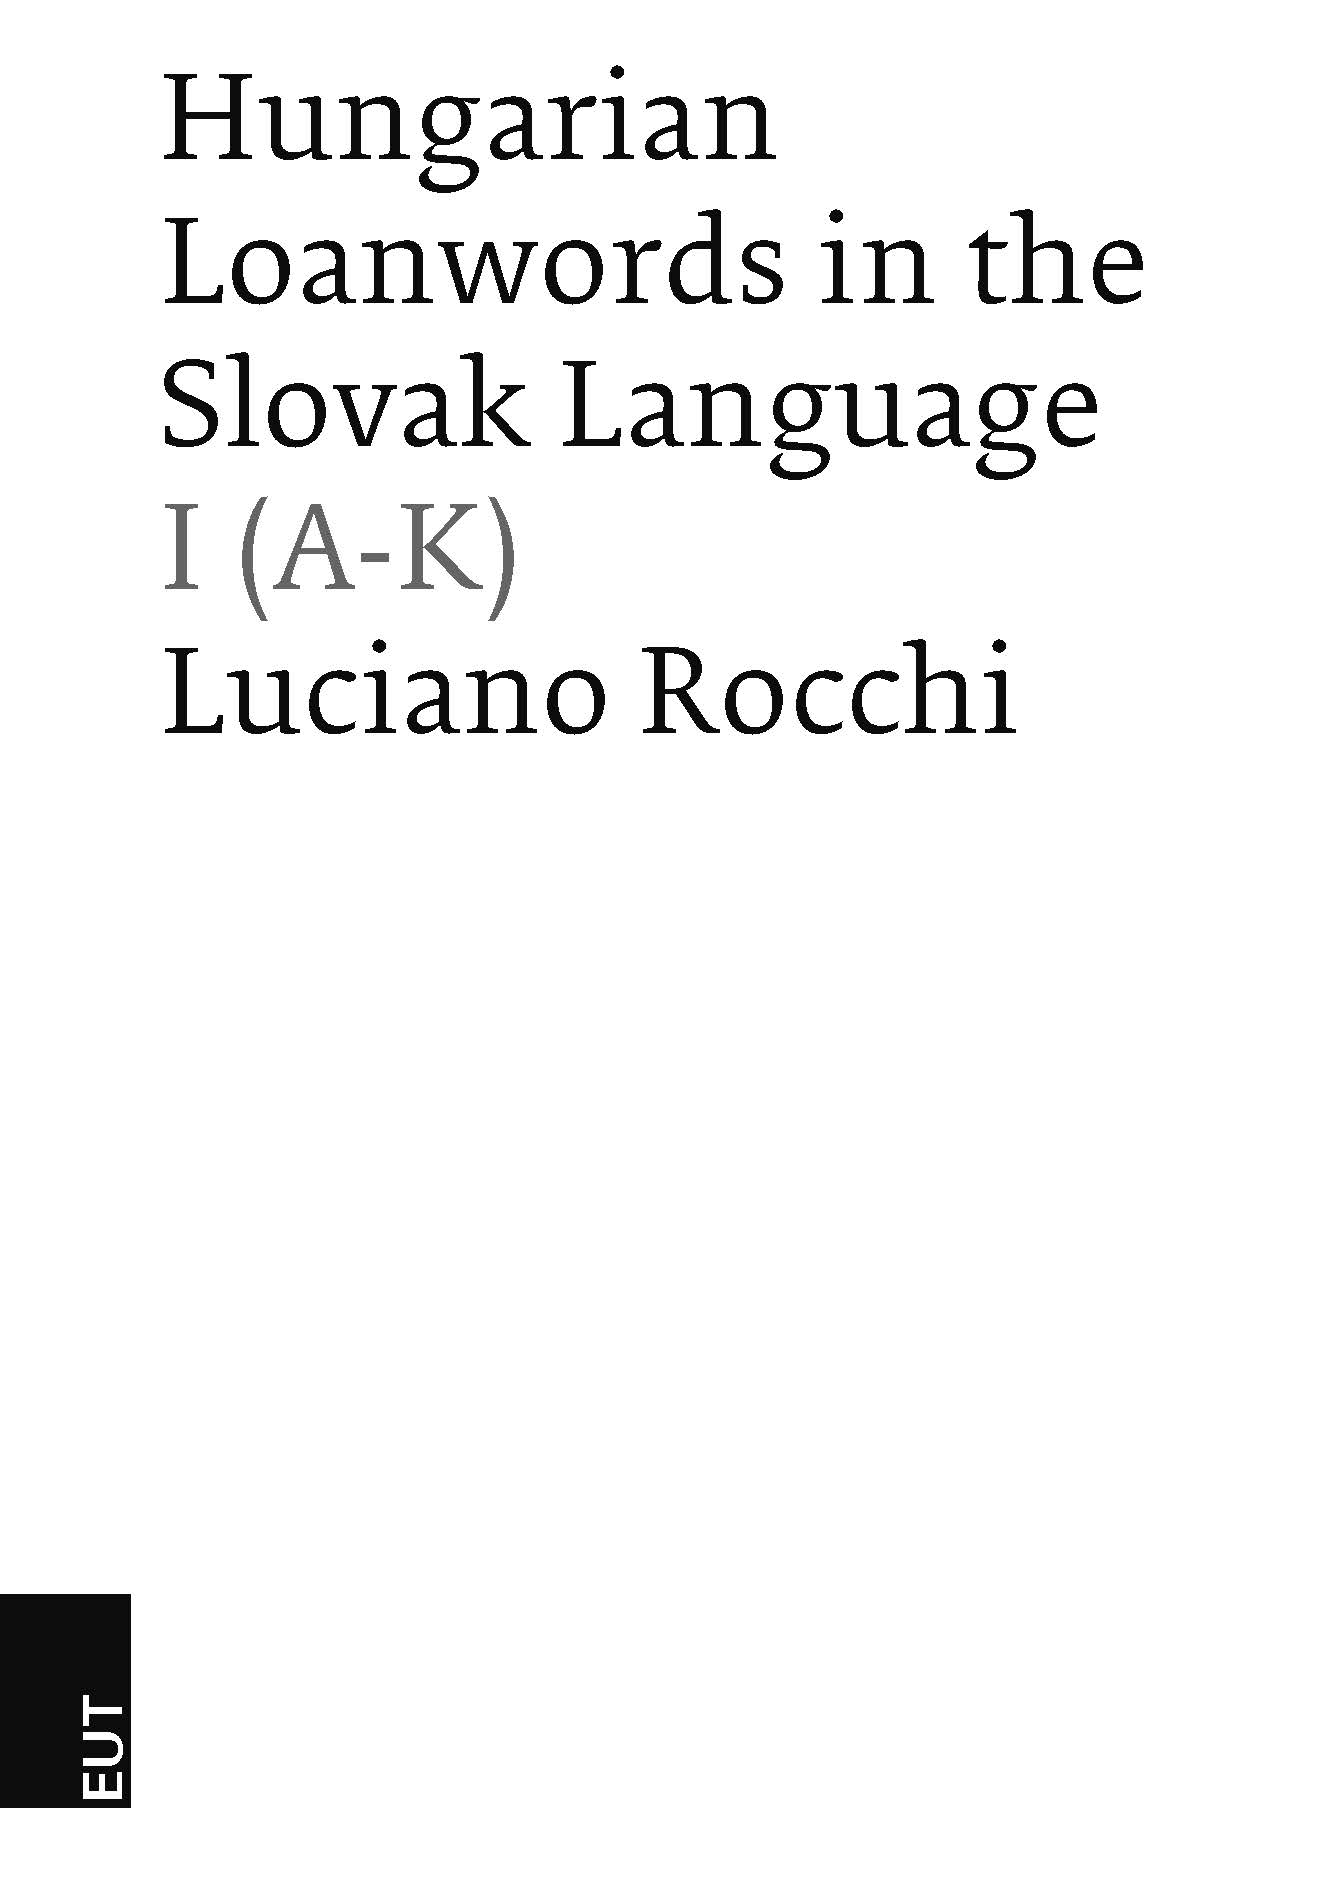 Hungarian loanwords in the Slovak language: I (A-K)